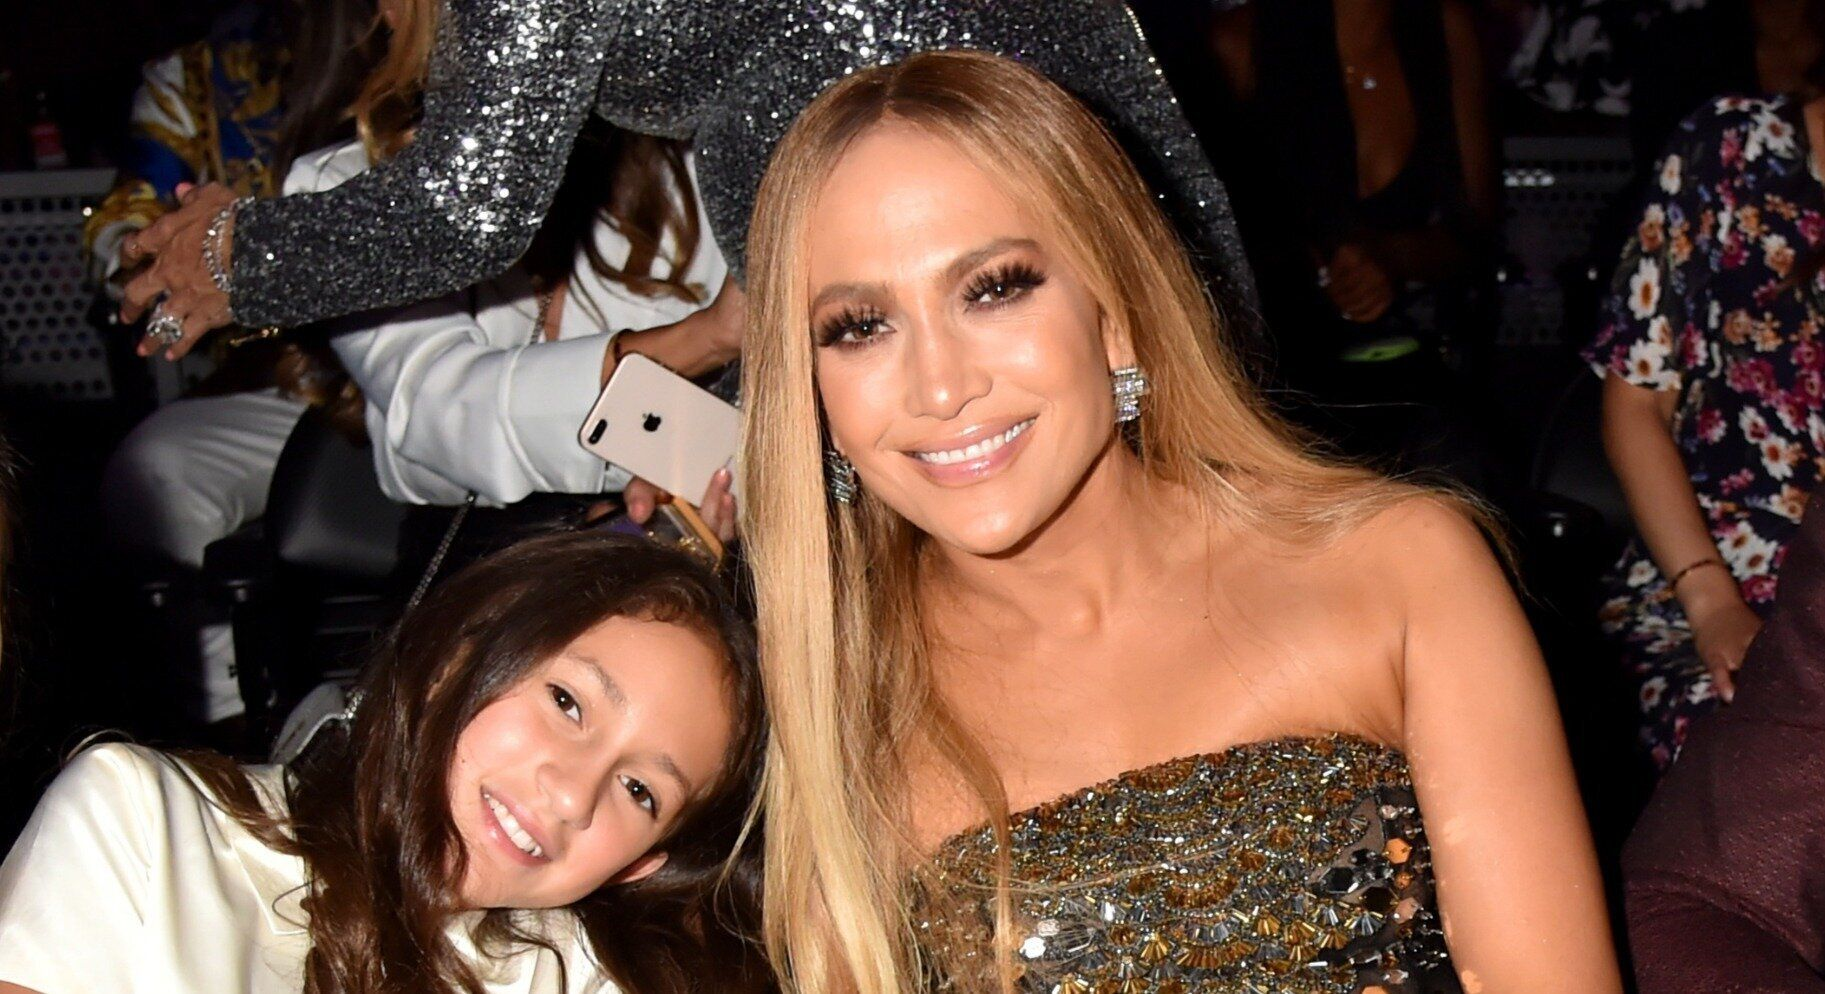 Jennifer Lopez was joined by 11-year-old daughter Emme on stage for a duet [Image: Getty]